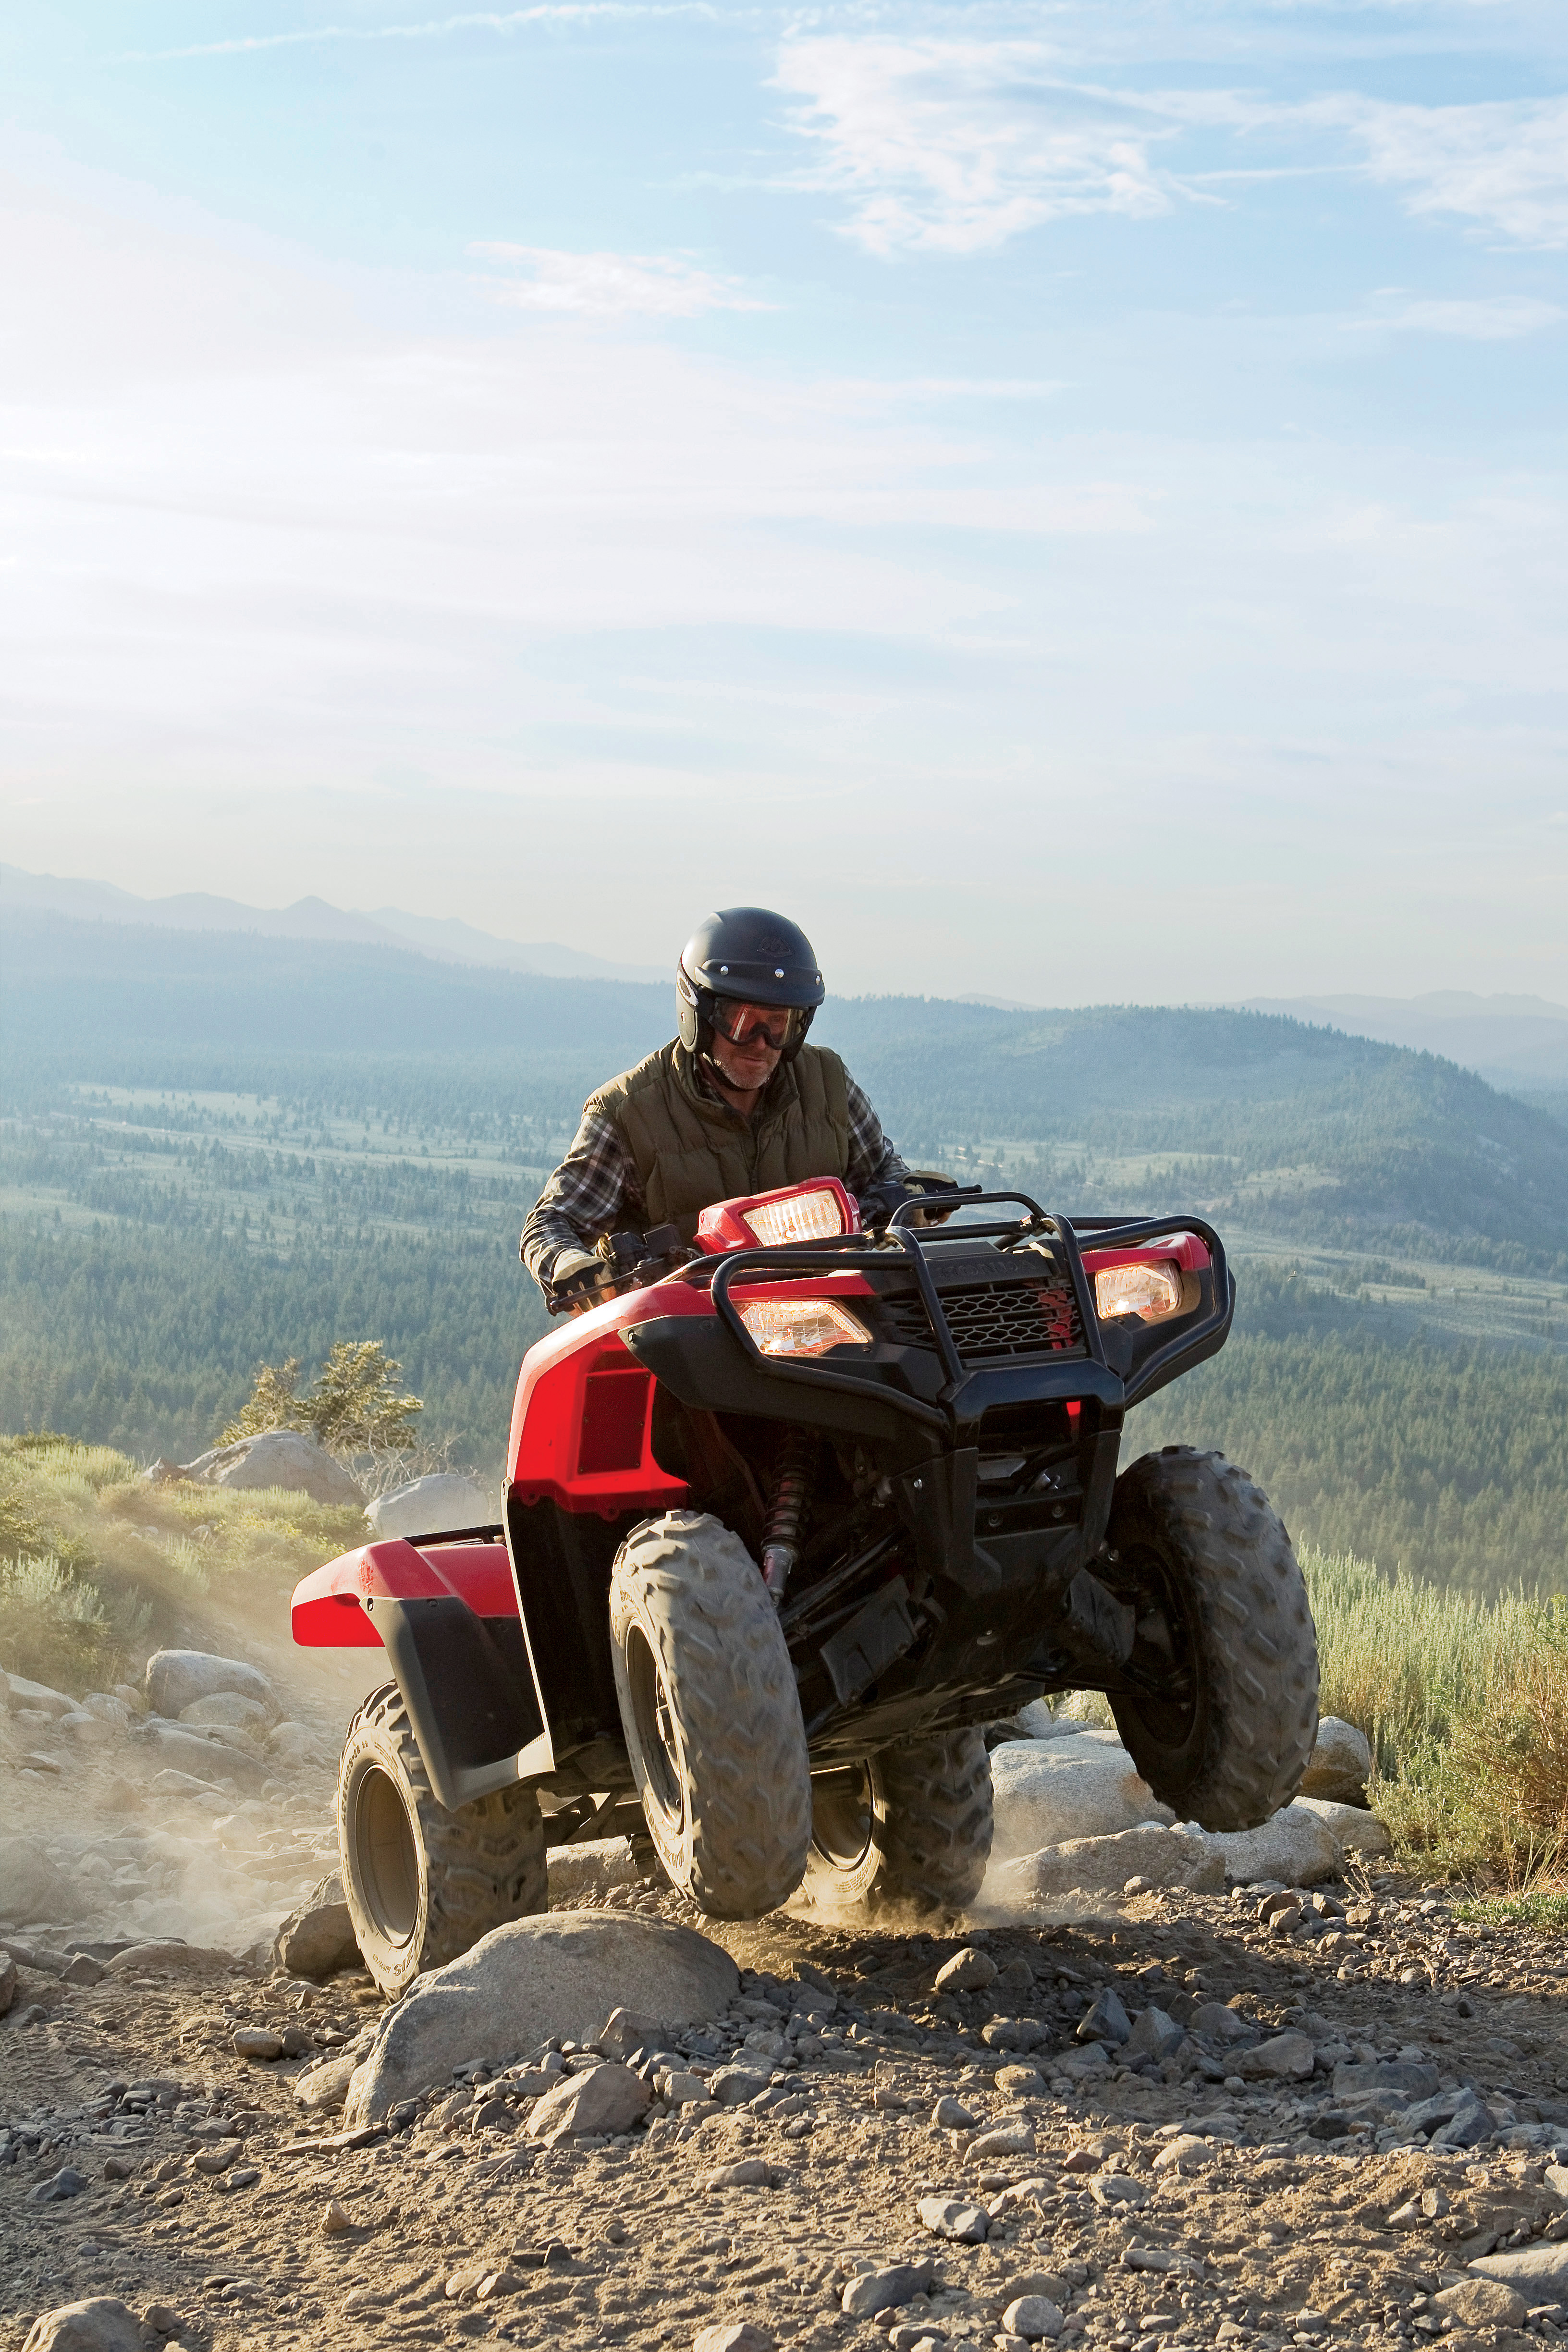 Honda ATV having fun